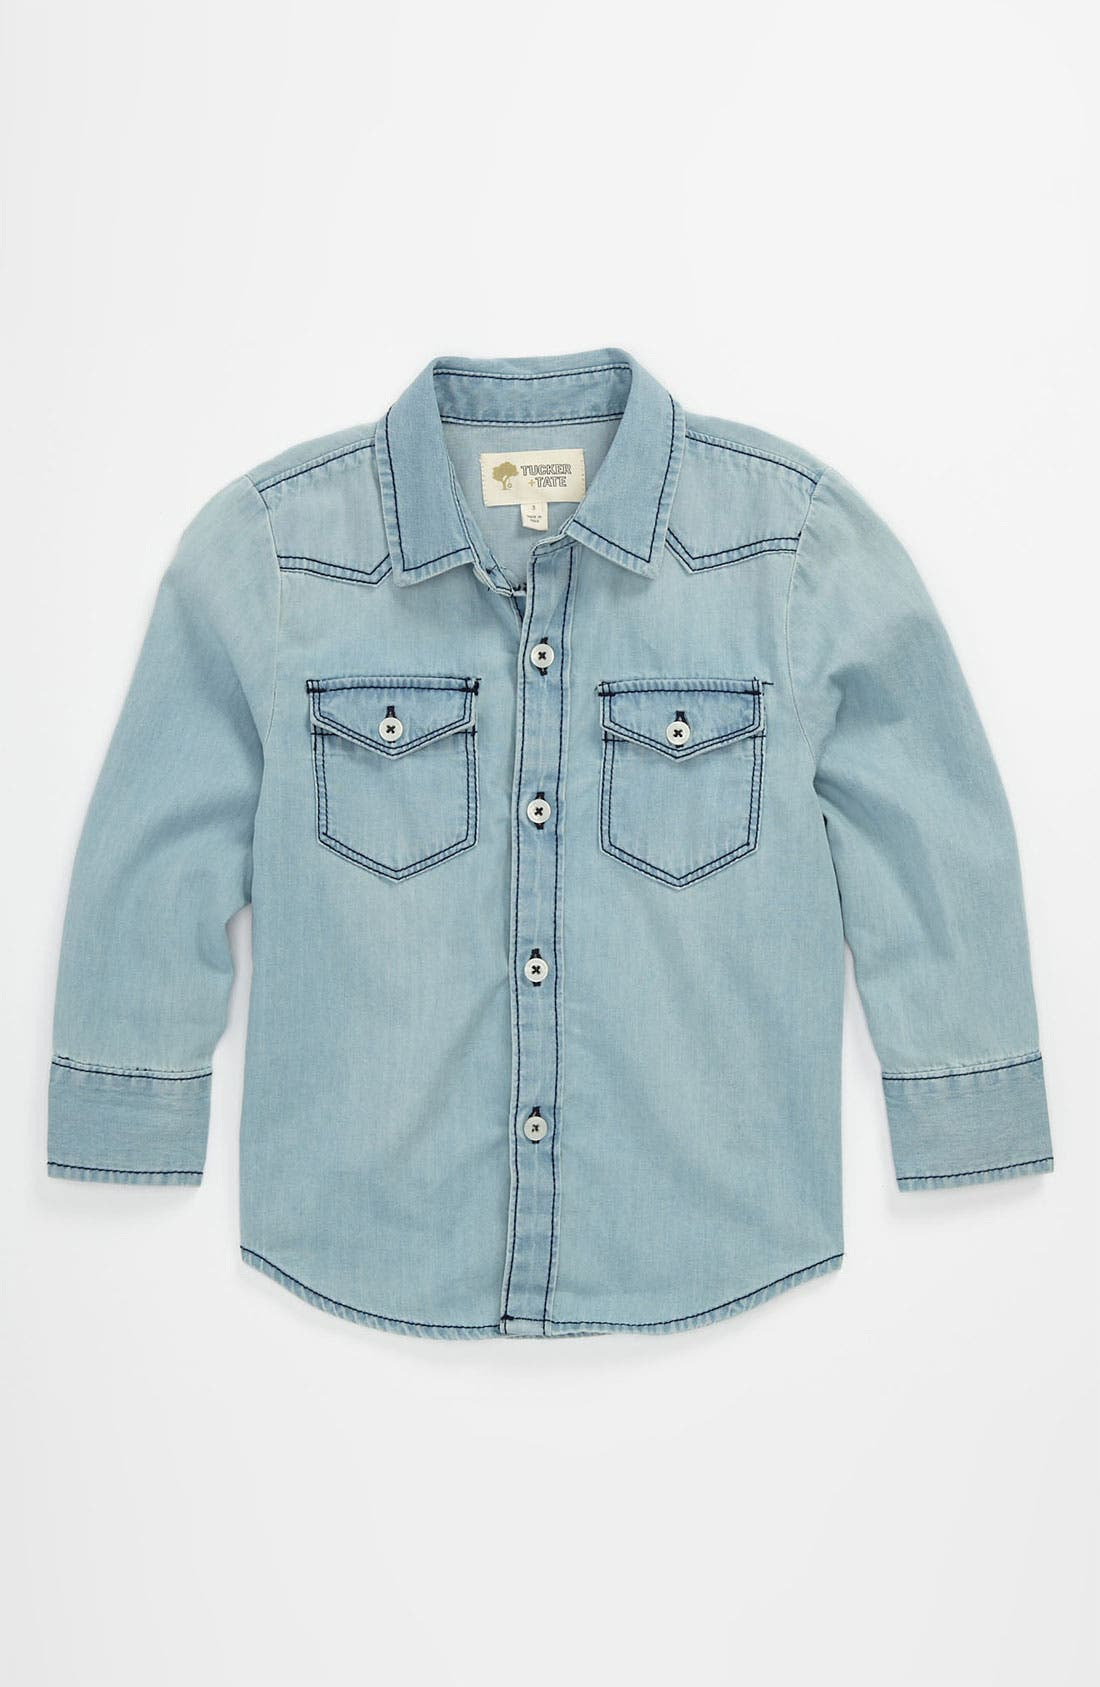 Alternate Image 1 Selected - Tucker + Tate 'Benson' Denim Shirt (Toddler)